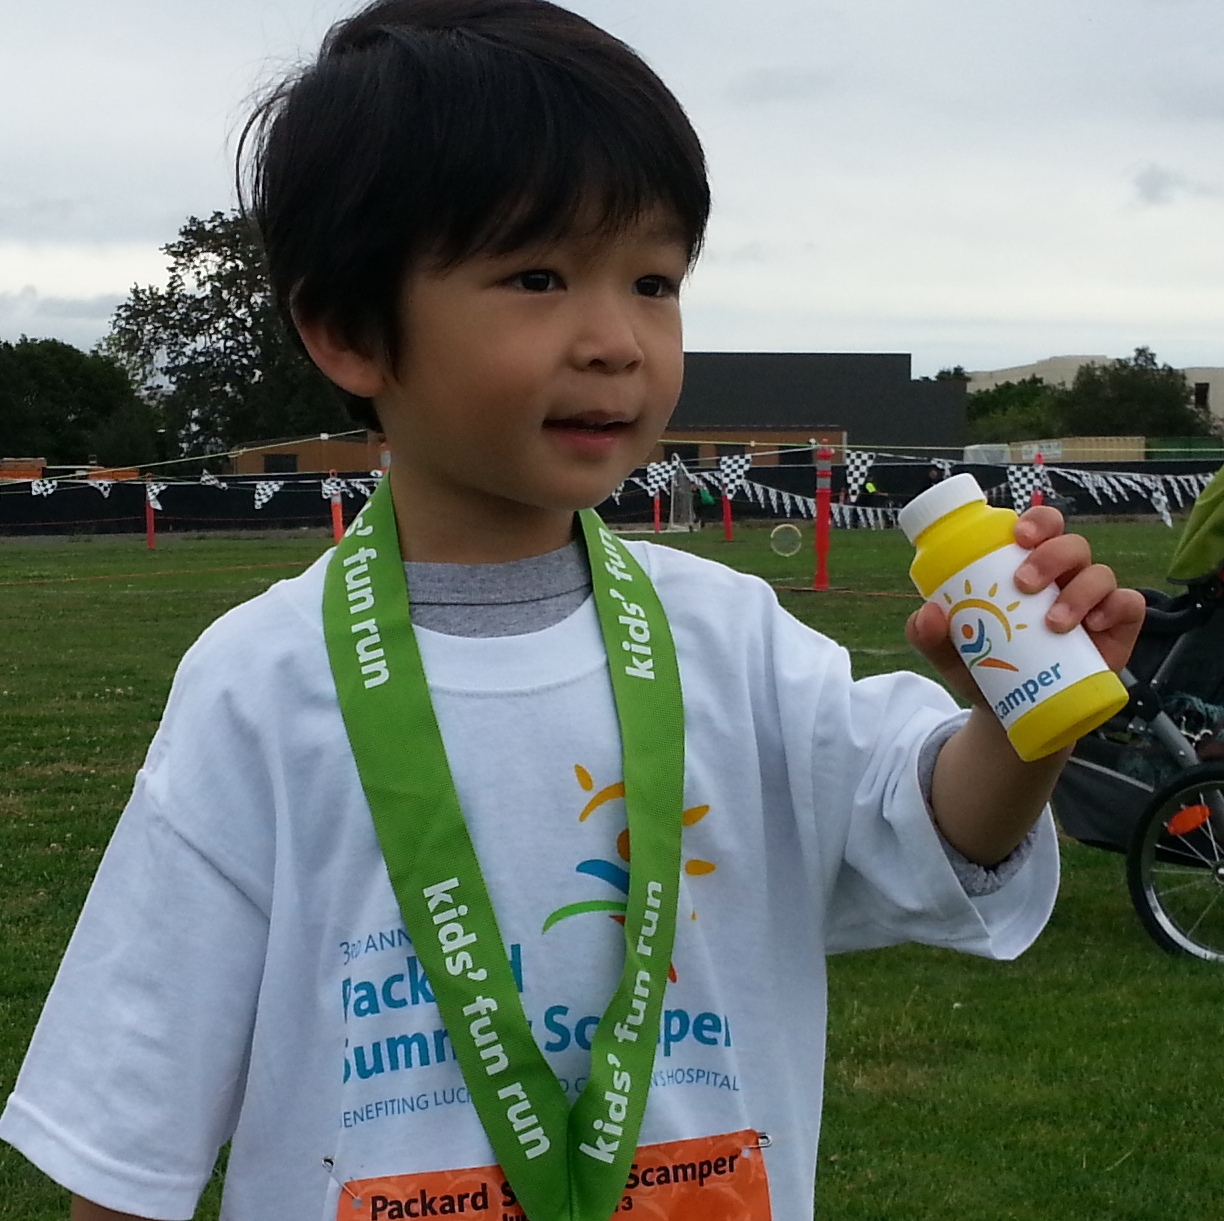 Back at Summer Scamper again in 2013, with Haruto participating in the Kids' Fun Run for the first time.